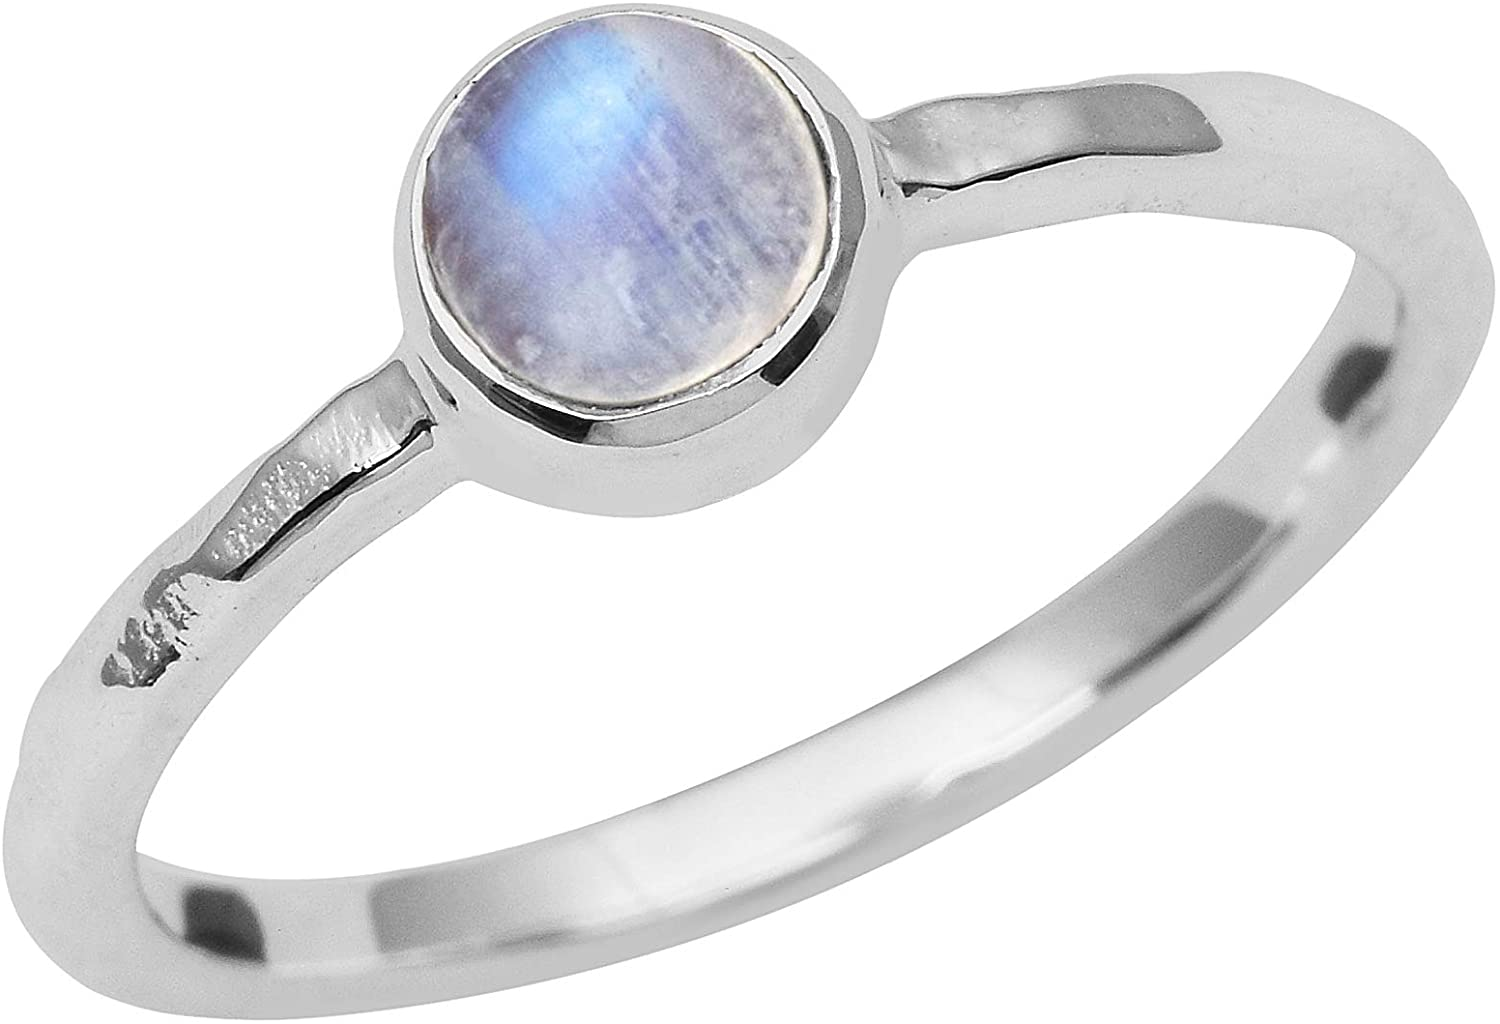 Shine Jewel Bezel Set Rainbow Moonstone 925 Sterling Silver Birthstone Solitaire Ring